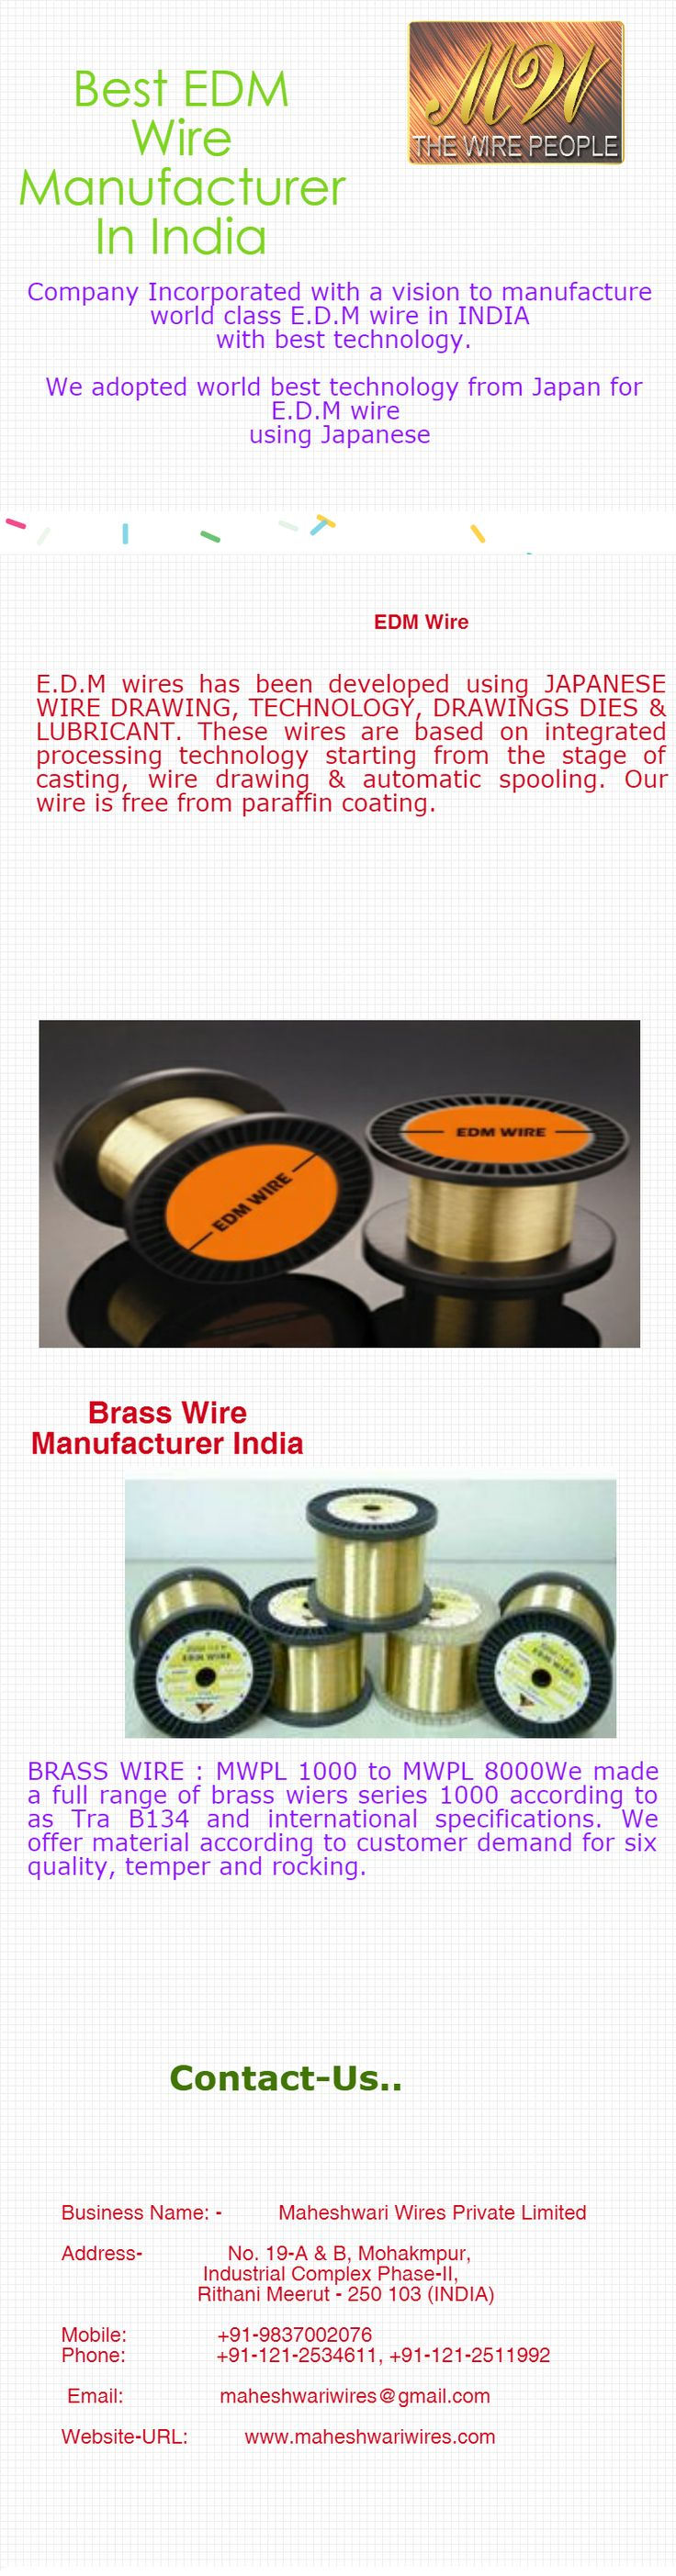 28 best Brass Wires images on Pinterest | Brazing, Cord and Wire